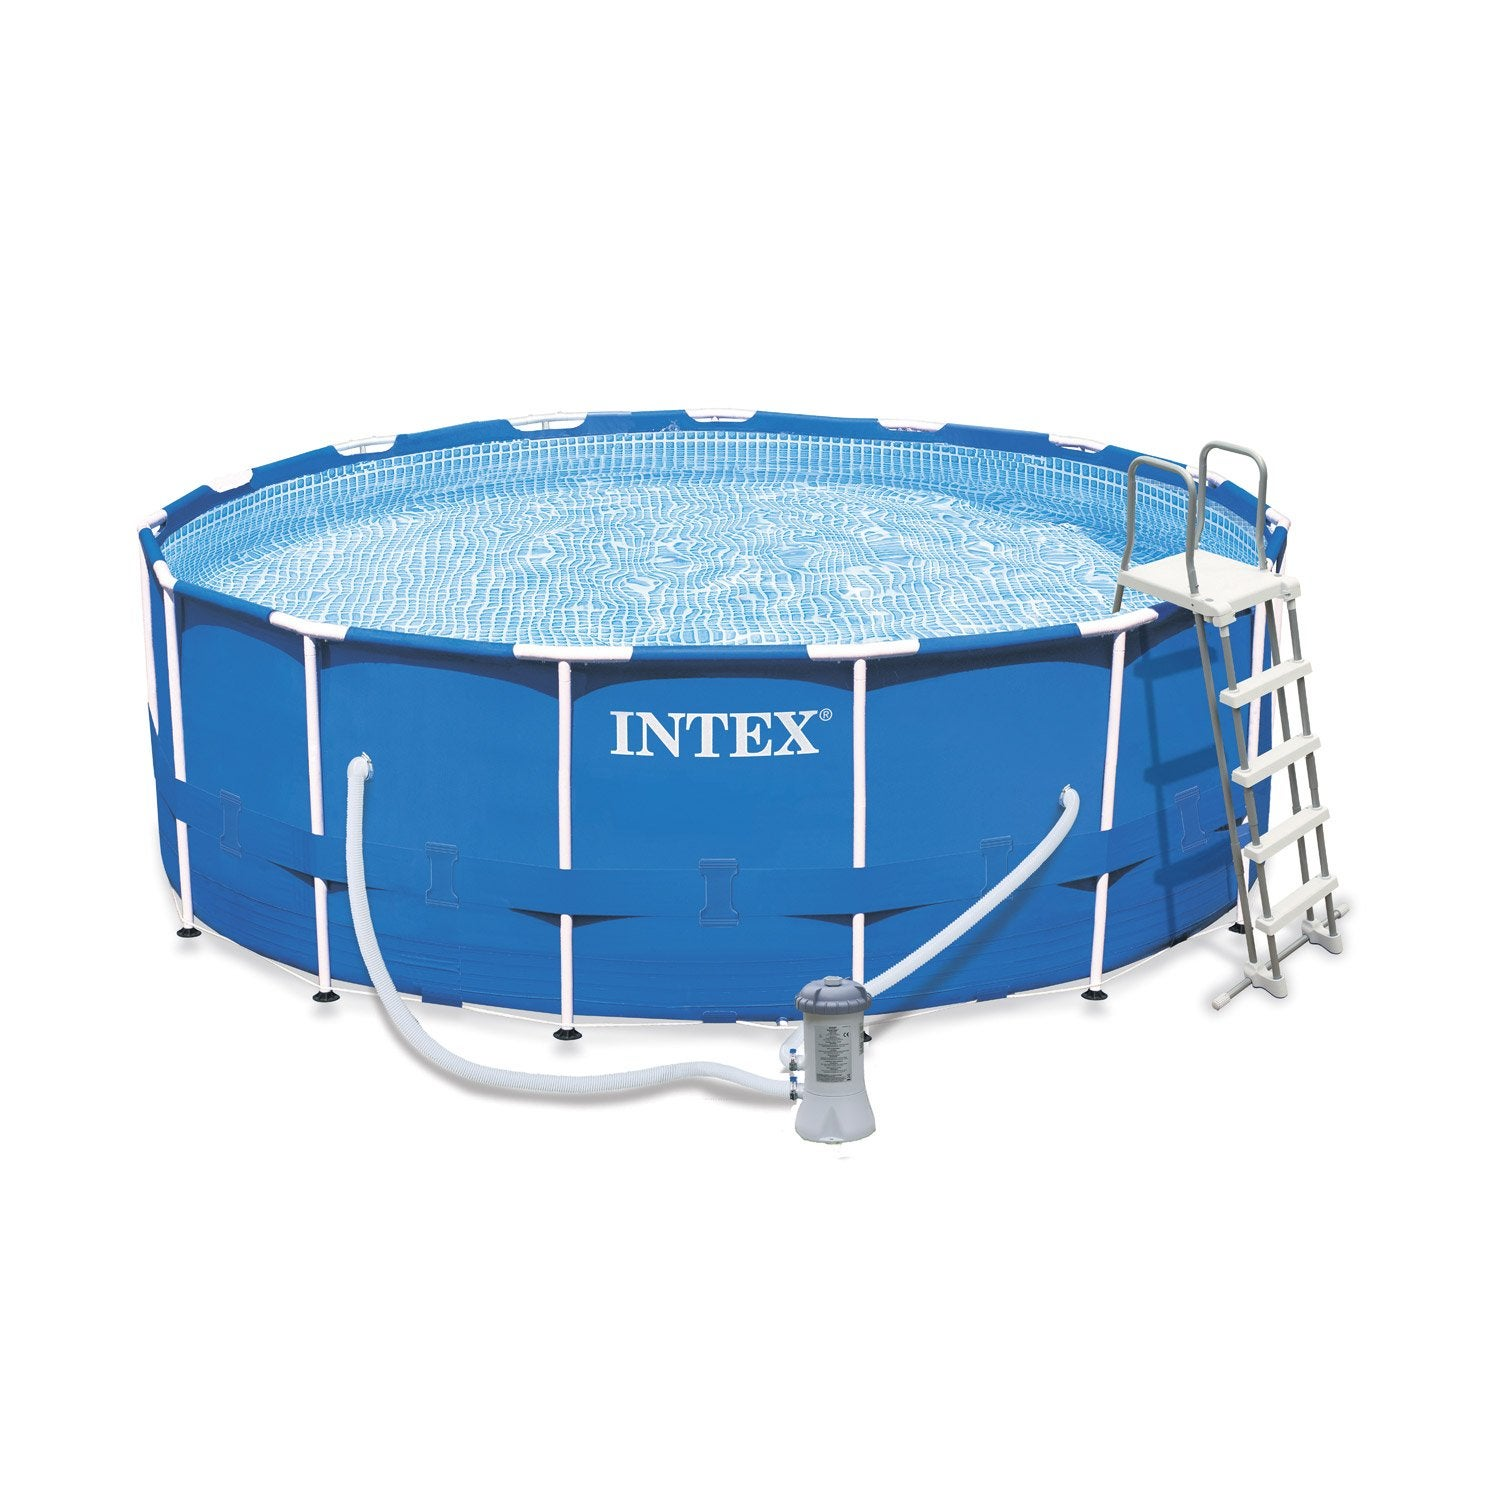 Piscine hors sol autoportante tubulaire metal frame intex for Sevylor piscine hors sol